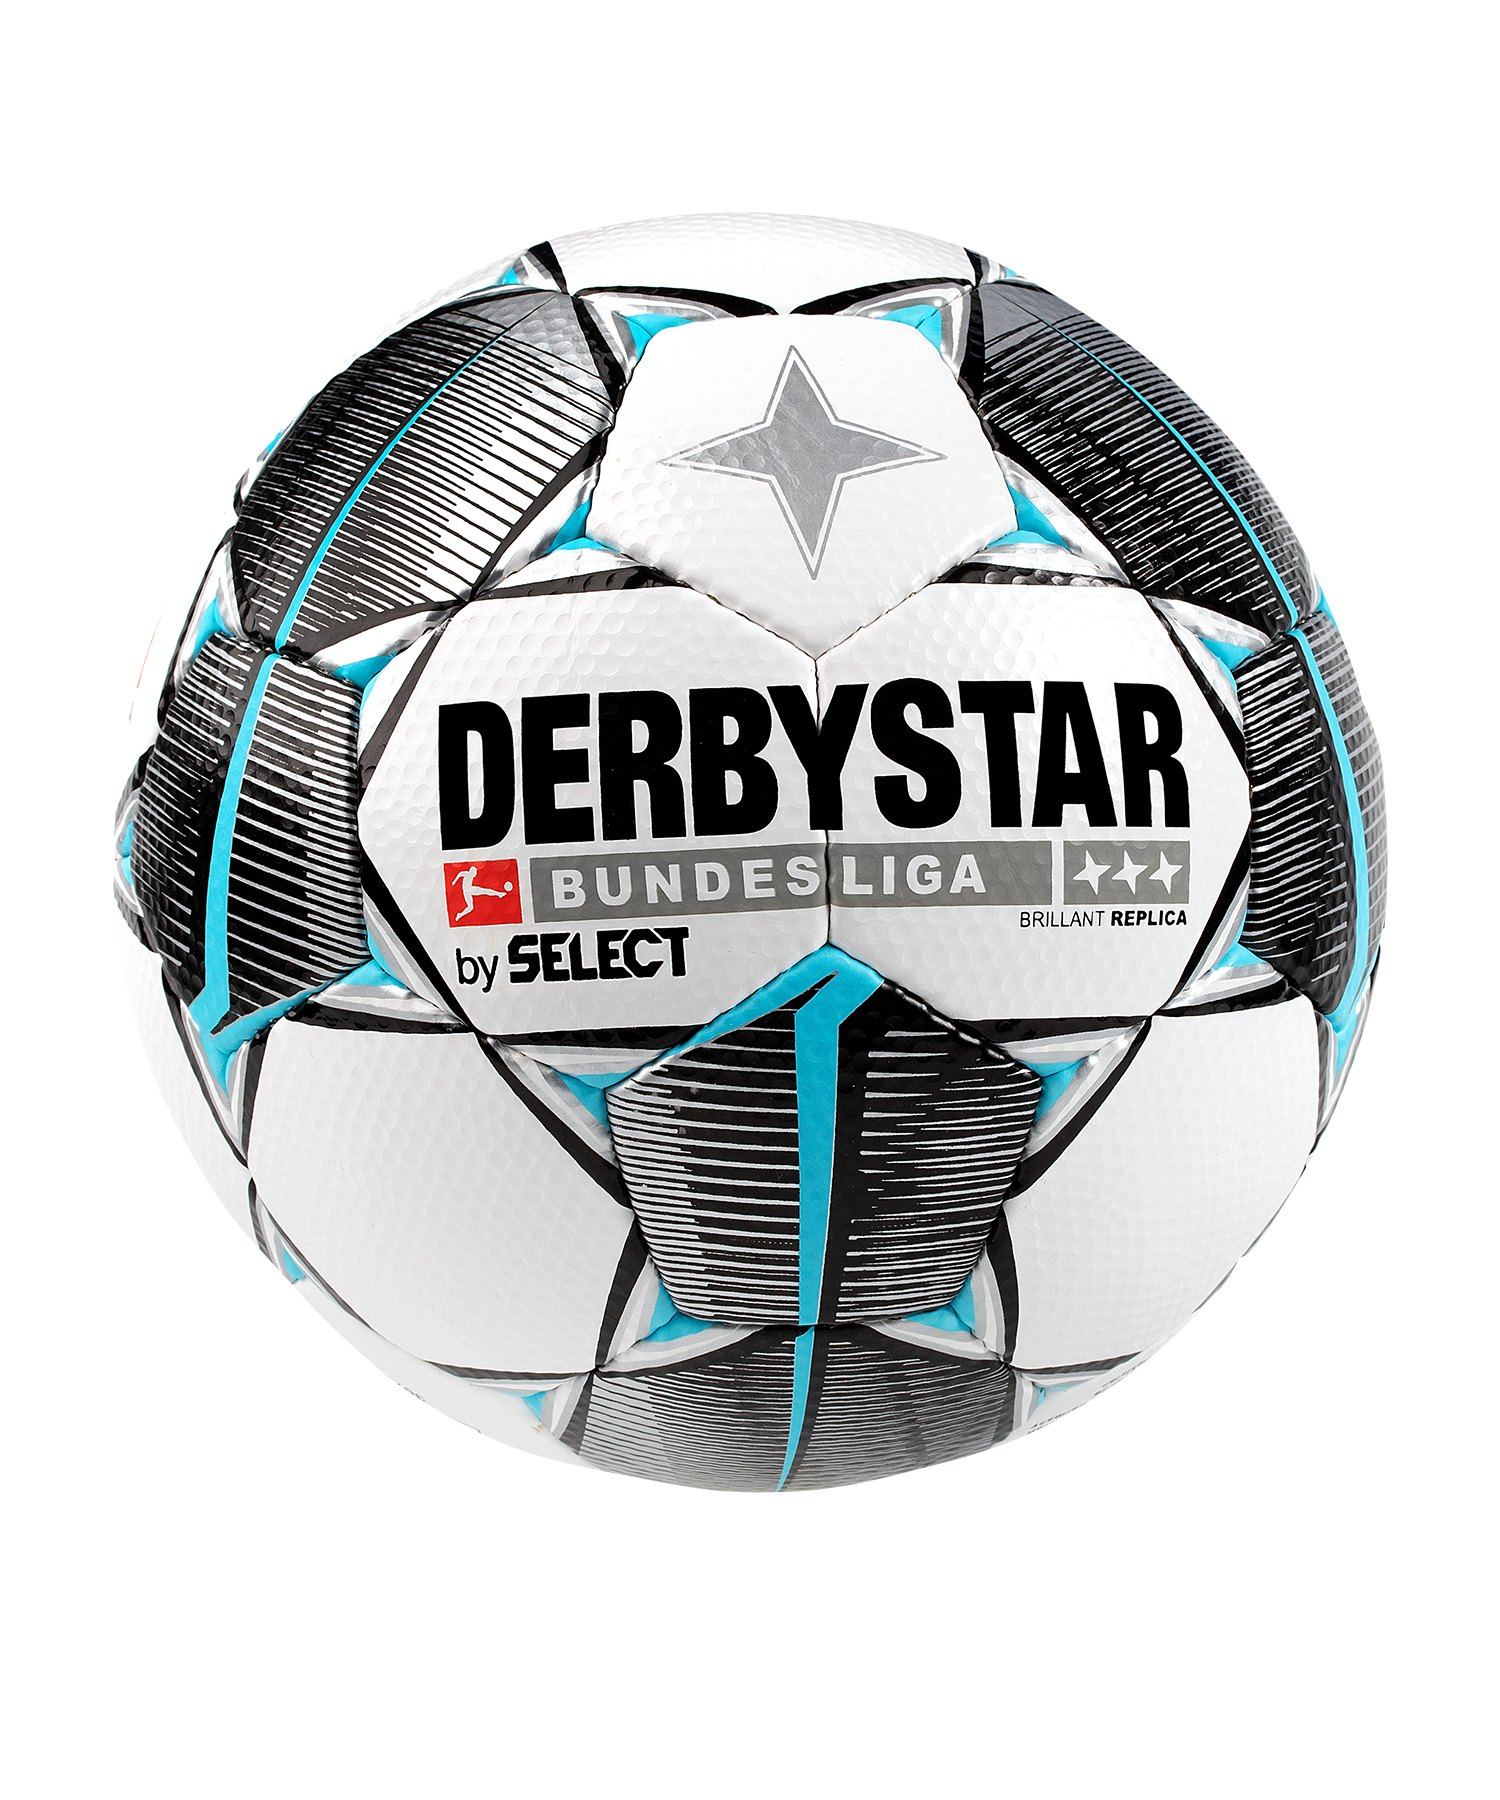 Derbystar Bundesliga Brillant APS Replica Weiss F019 - weiss